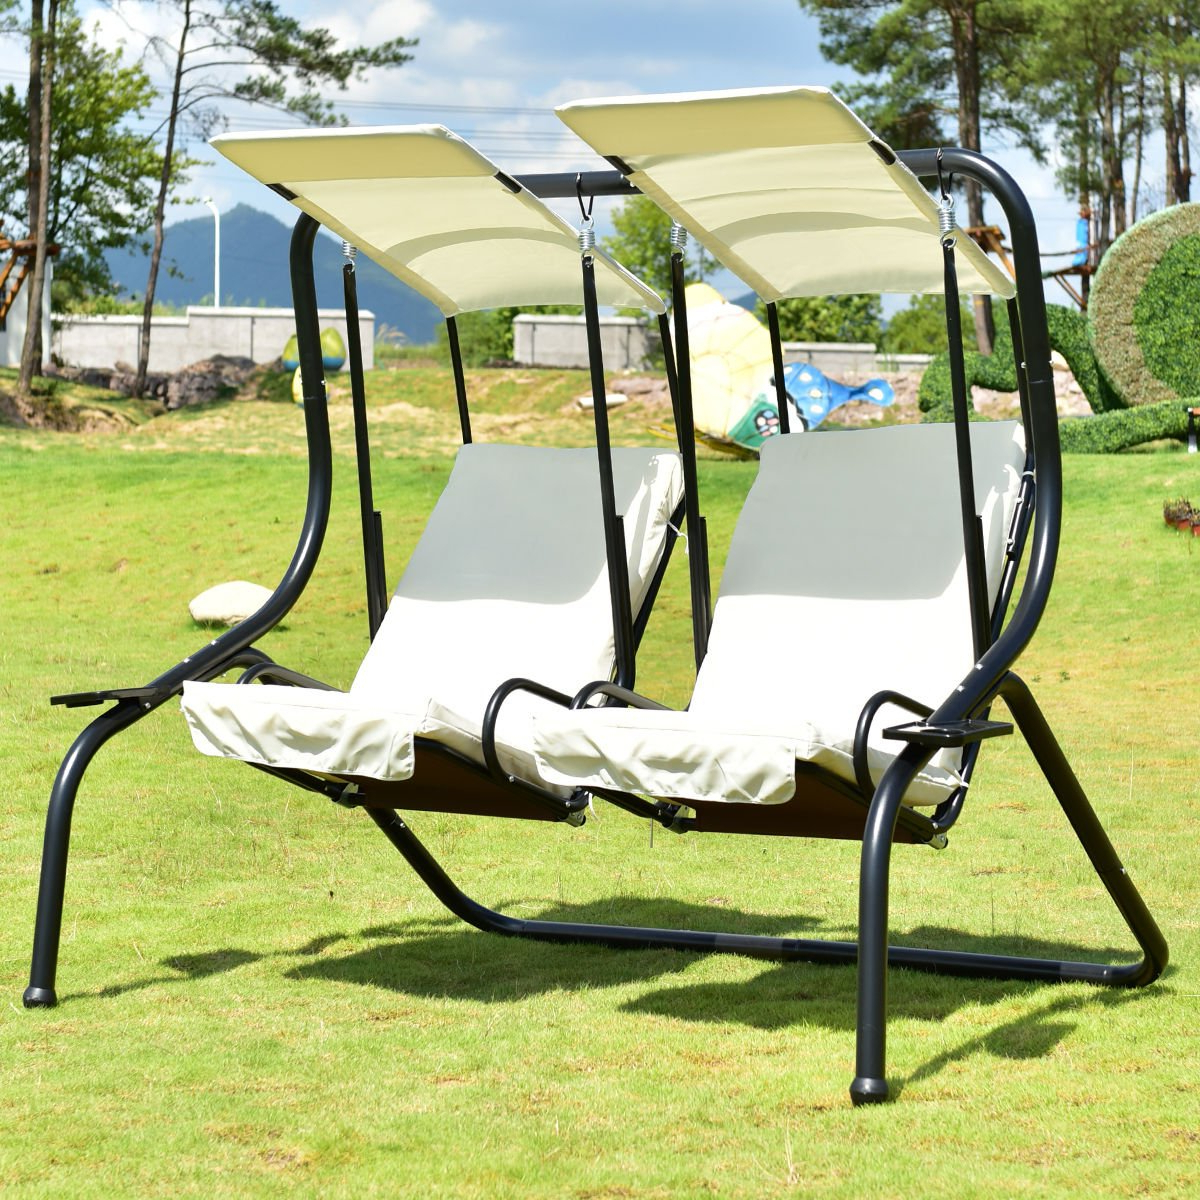 Tangkula 3 Person Patio Swing Glider Outdoor Swing Hammock With Well Known 3 Person Red With Brown Powder Coated Frame Steel Outdoor Swings (View 15 of 25)